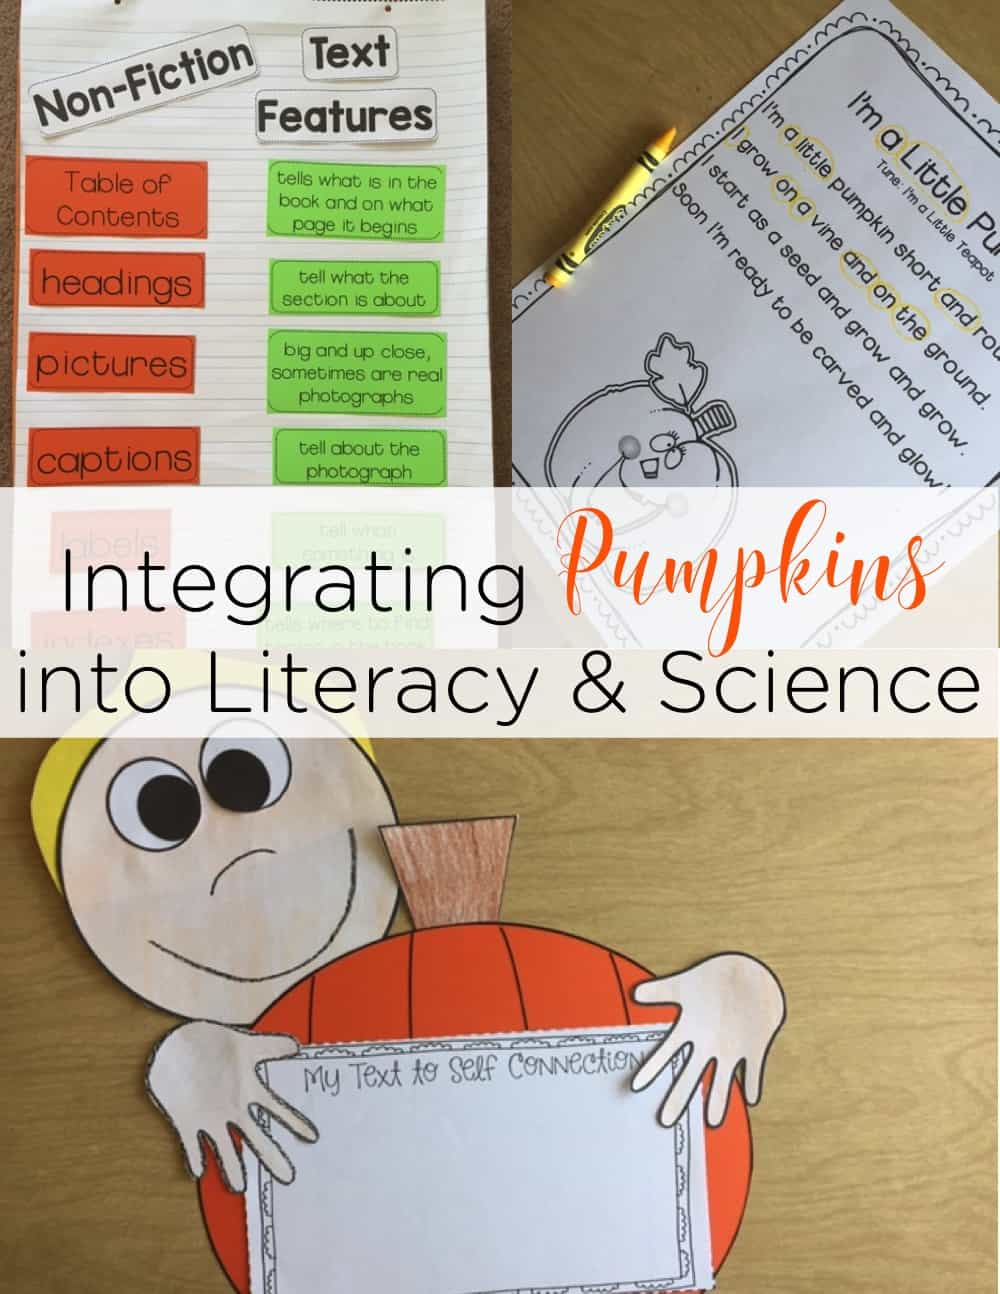 Integrating Pumpkins in k-2 is the perfect way to squeeze science into reading and writing! These pumpkin activities were completely engaging in my classroom! Don't forget to snag the FREEBIE! #balancedliteracy #science #pumpkinactivities #kindergarten #firstgrade #secondgrade #homeschool